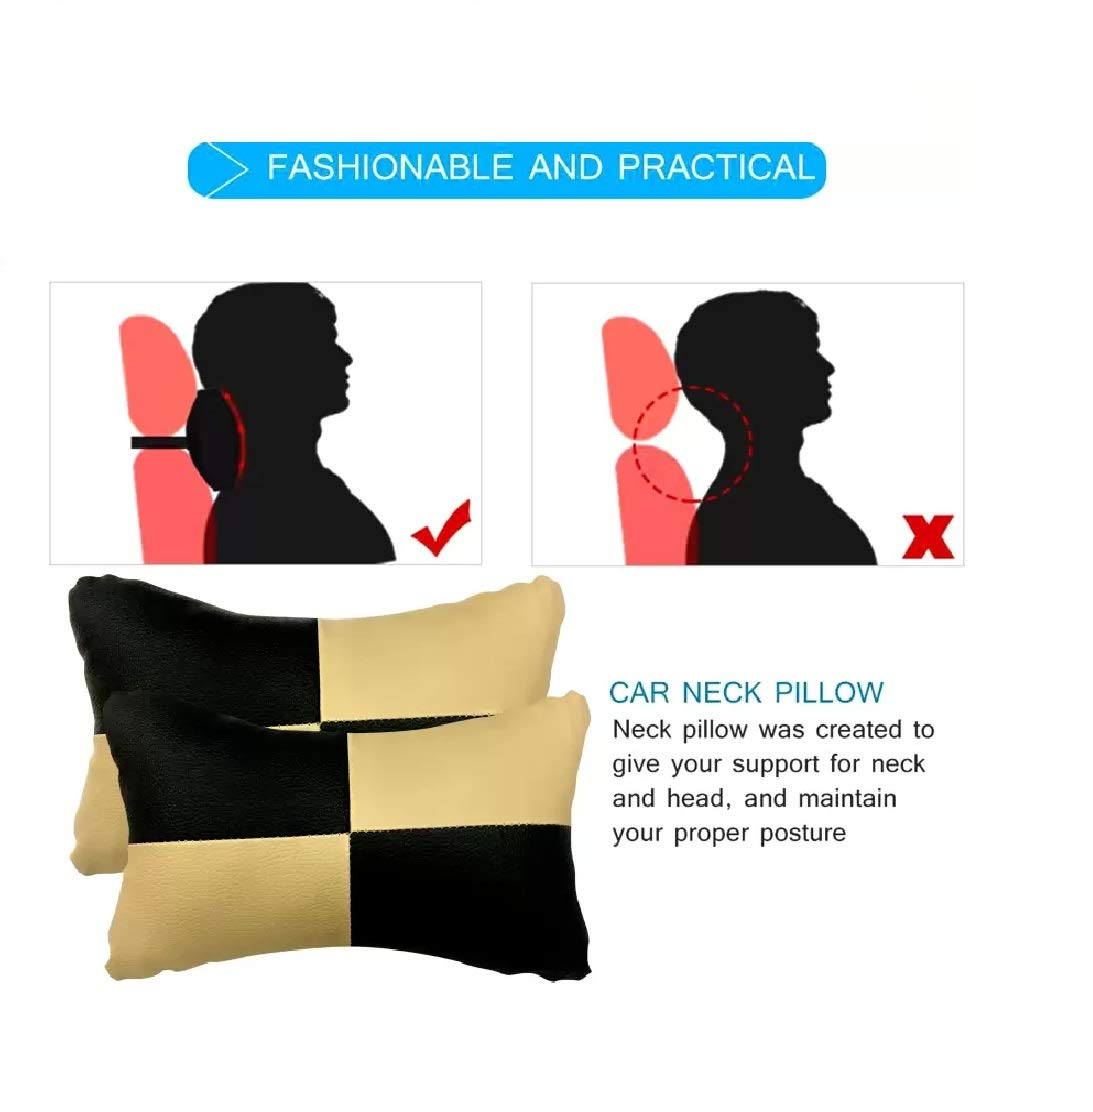 7 Best Neck Rest and Back Rest for Car